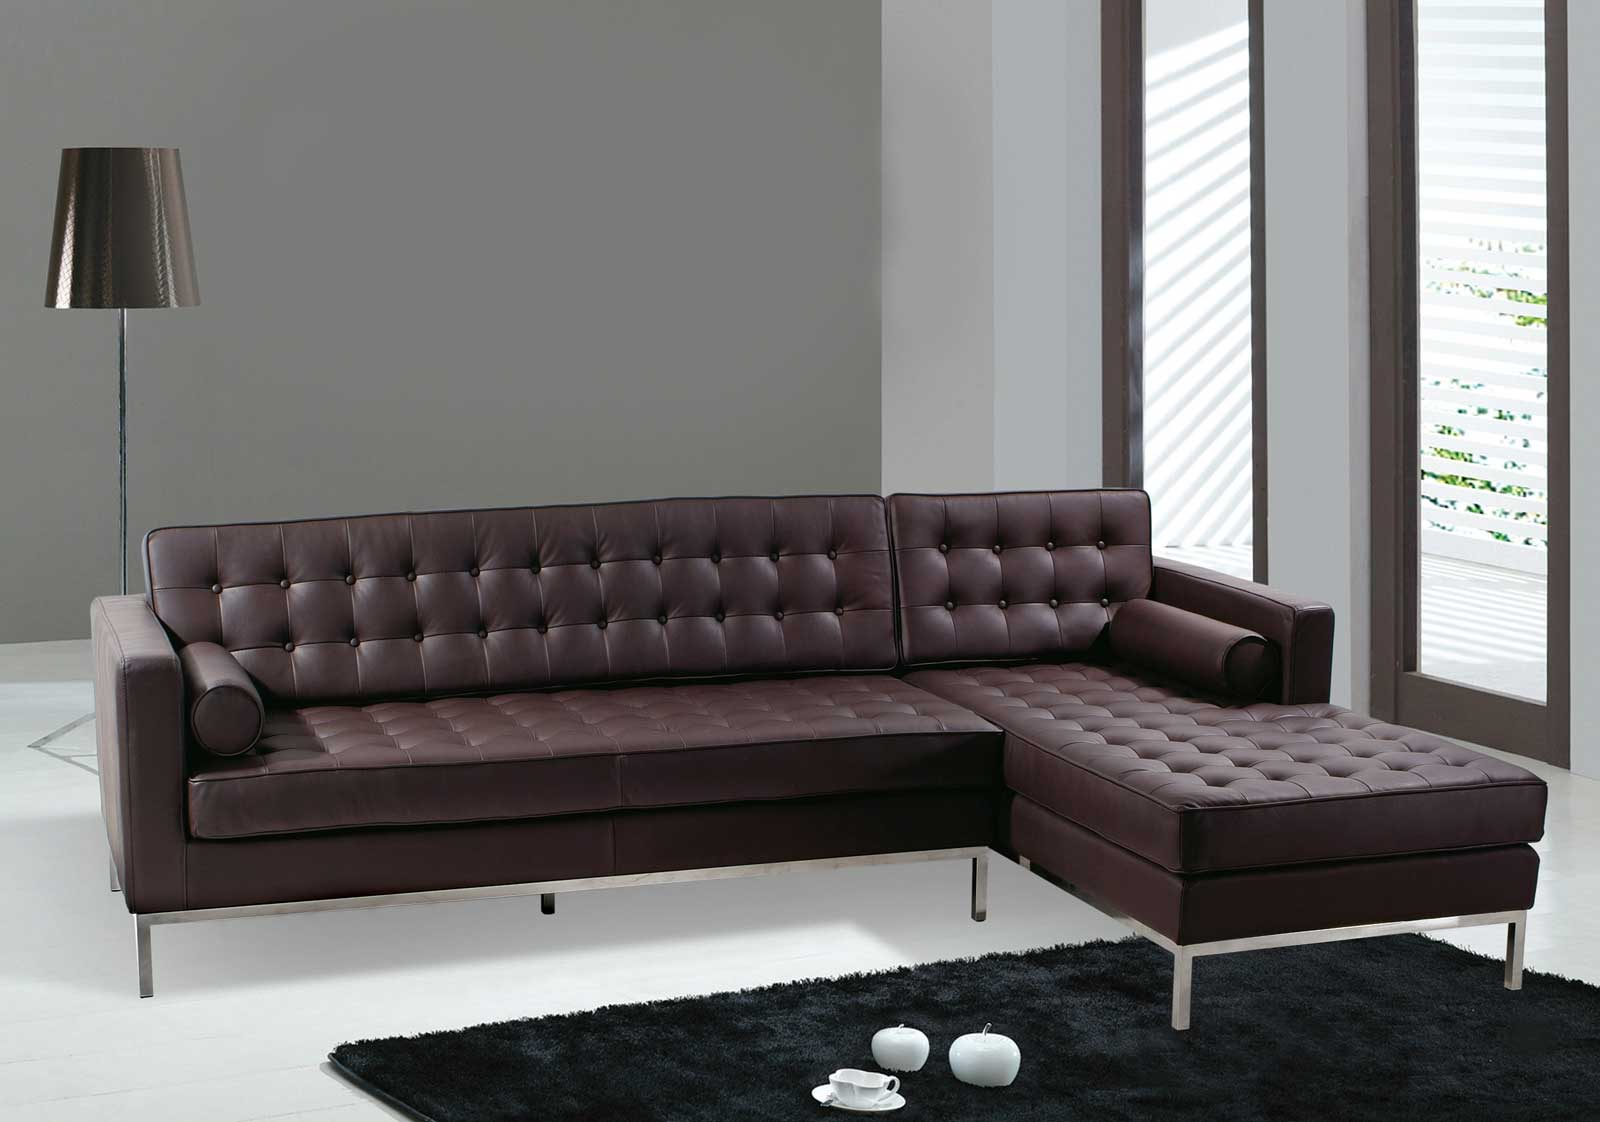 Modern sectional sofas for office waiting room Contemporary leather sofa